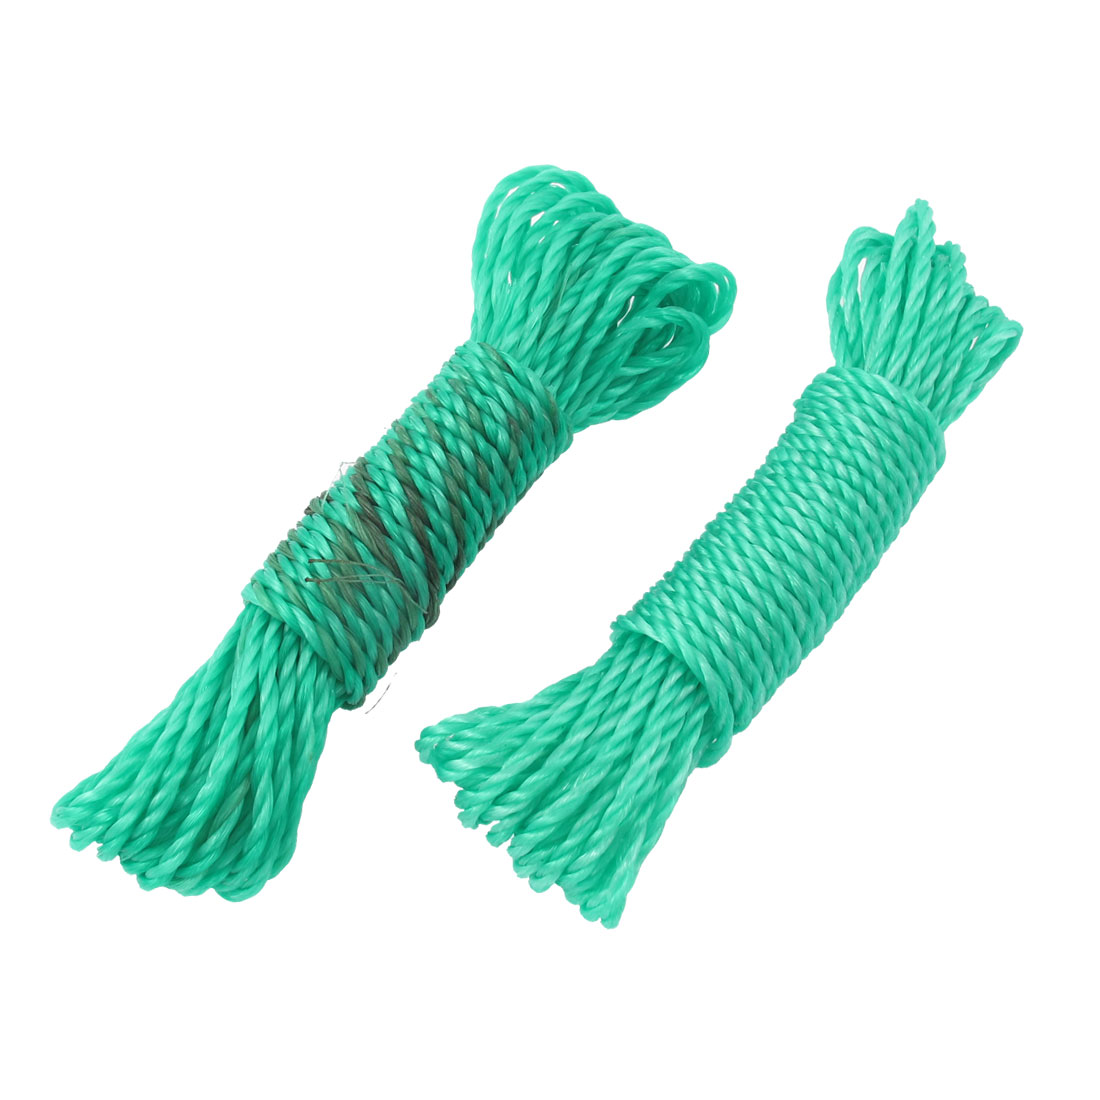 2pcs Nylon String Washing Clothes Dry Hanging Rope Clothesline Teal 10M Length